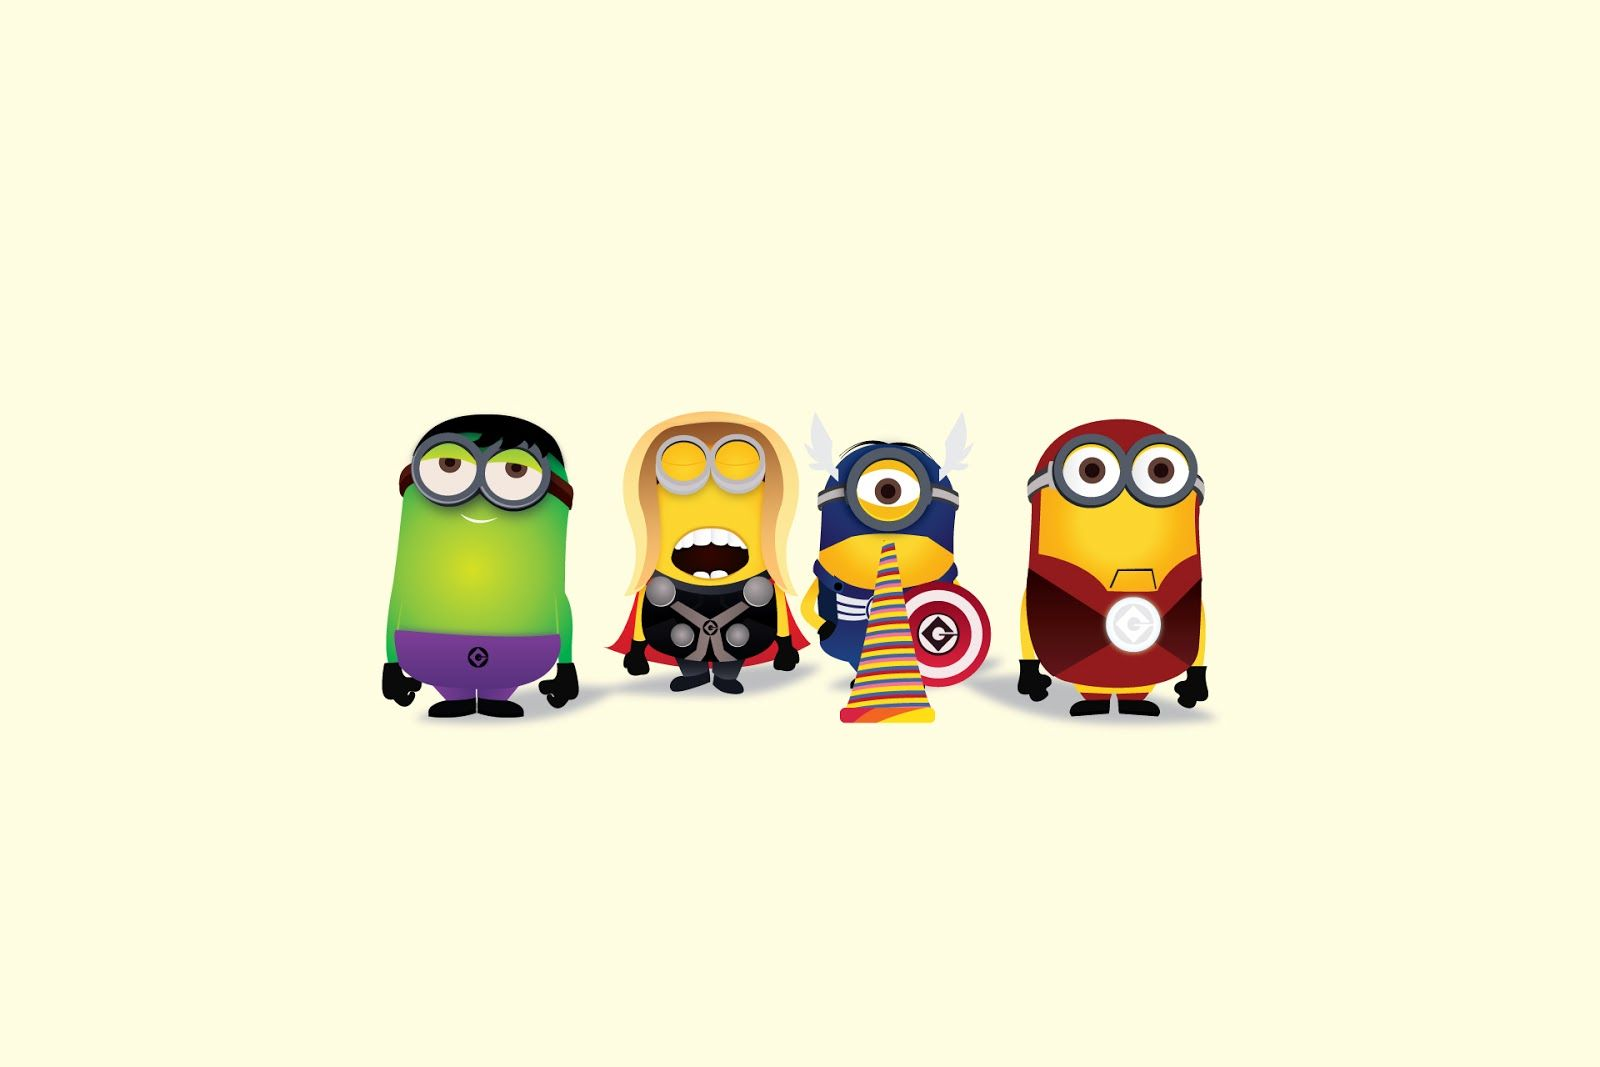 Minions Hd Wallpapers For Desktop Download 19201200 Minions